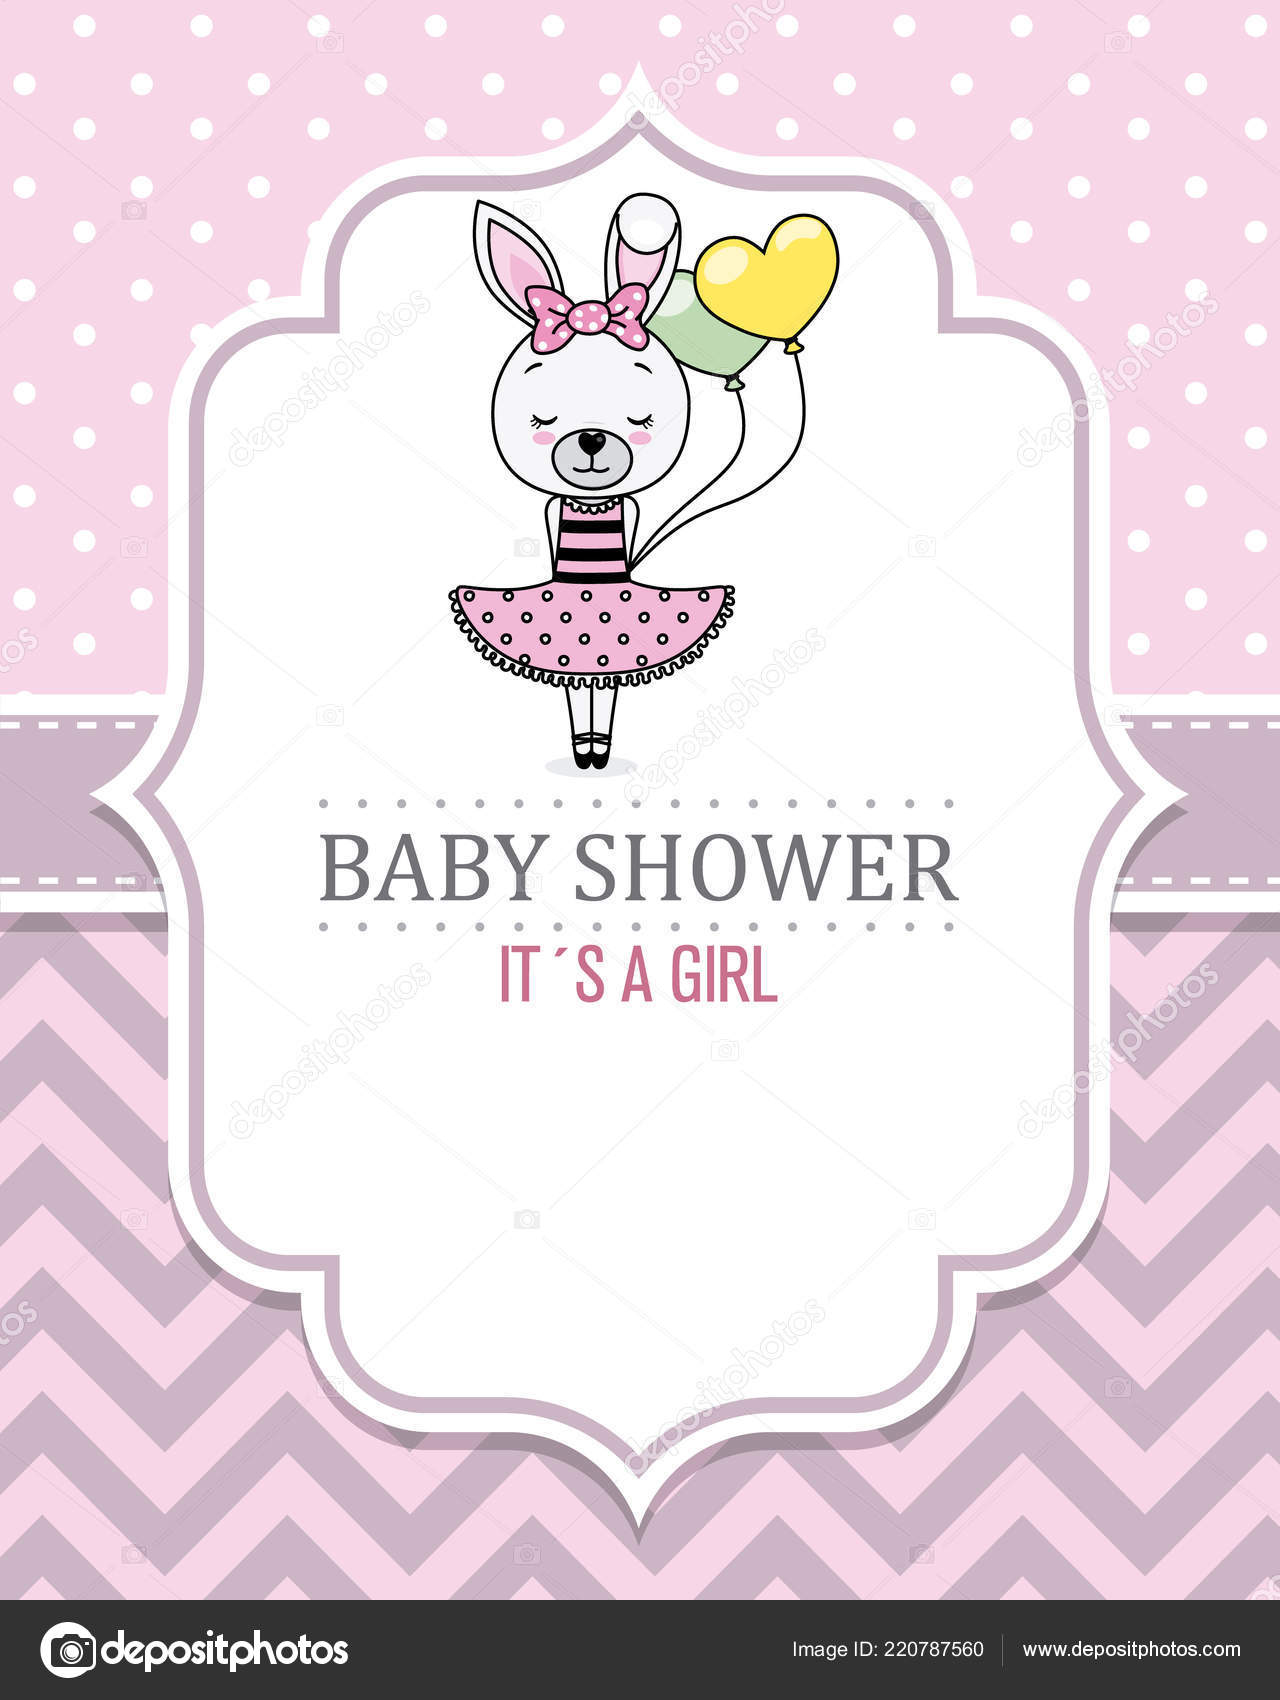 Baby Shower Karte Text.Baby Shower Card Girl Pretty Bunny Girl Space Text Stock